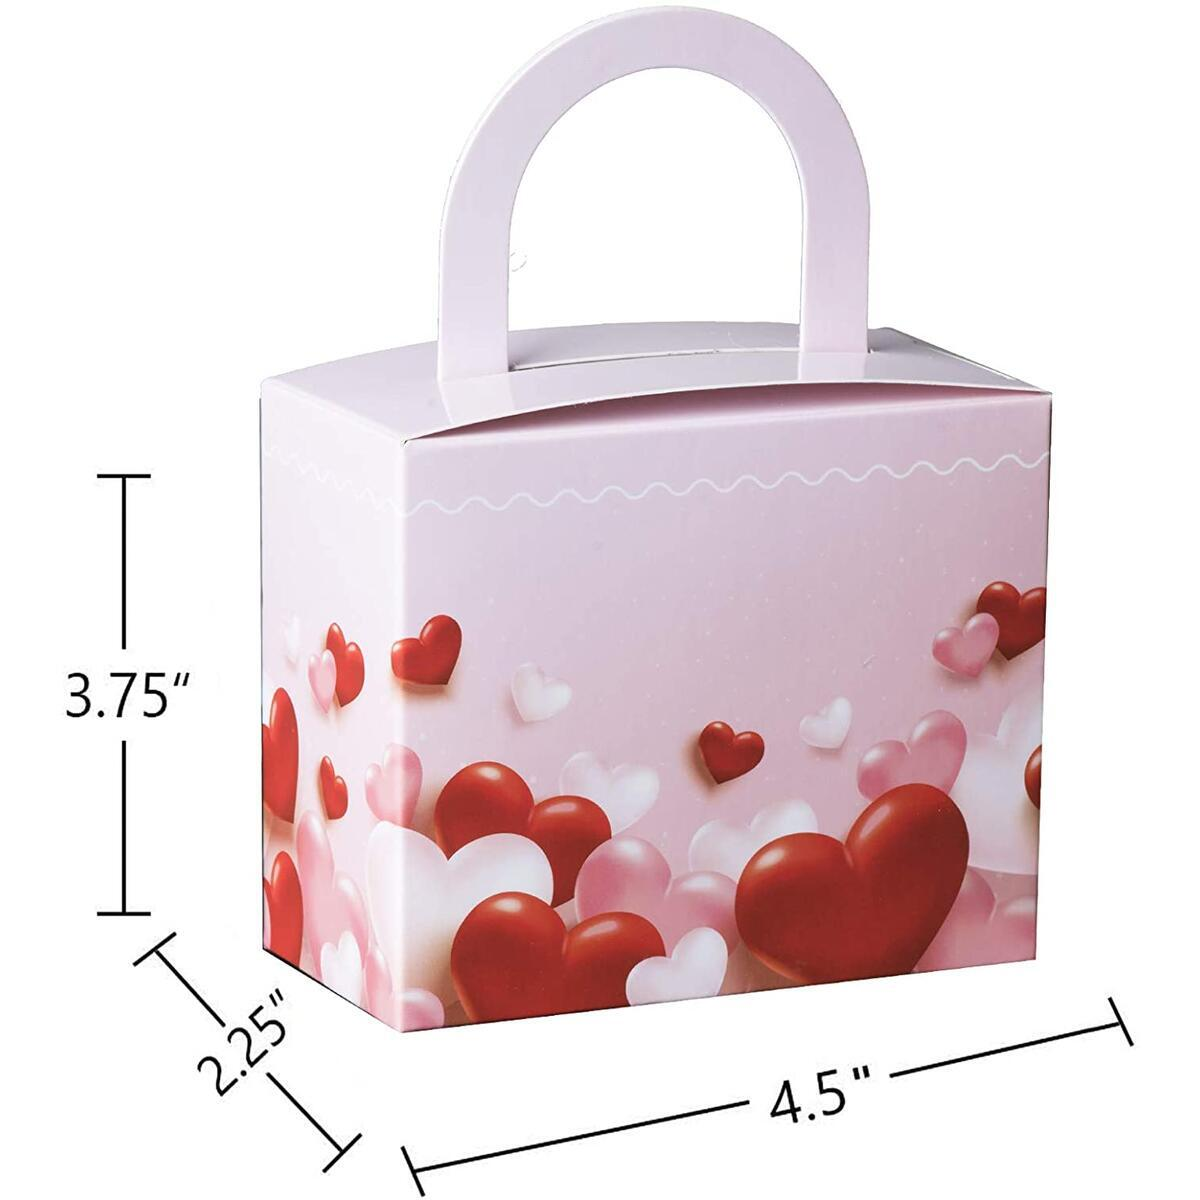 "Hammont Valentine's Day Candy Boxes - 18 Pack - Colorful Party Favor Treat Boxes with Sturdy Handle - Perfect for Valentine's Day, Wedding Favors, Celebrations | 4.5"" x 3.75"" x 2.25"""